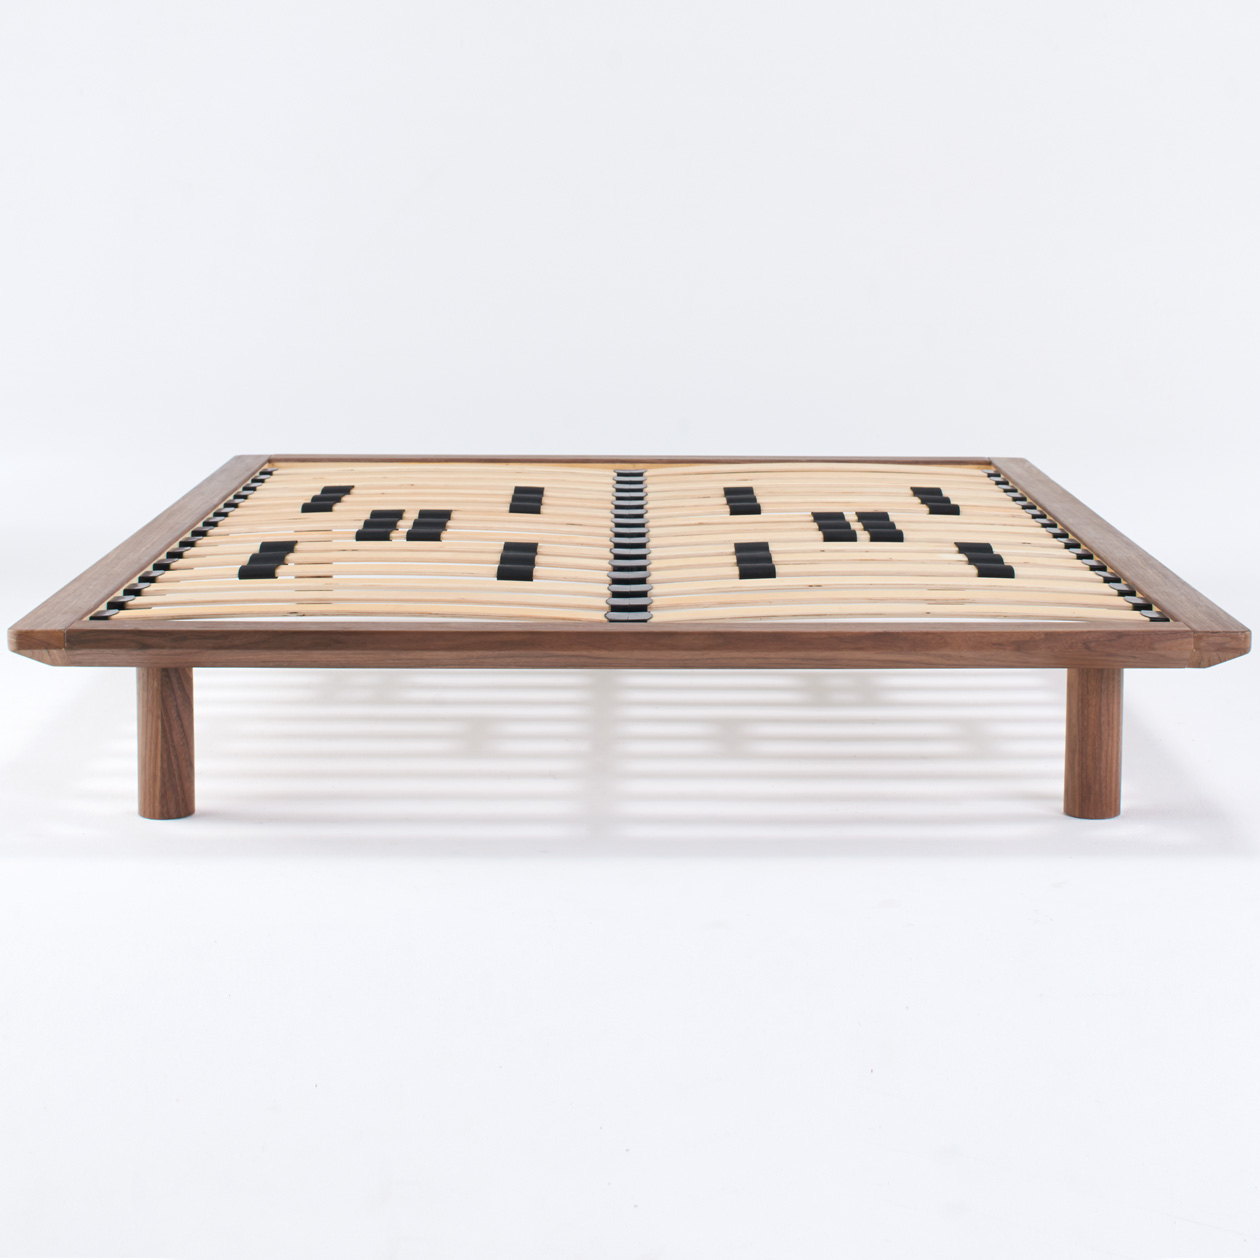 walnut wood bed frame brn double muji